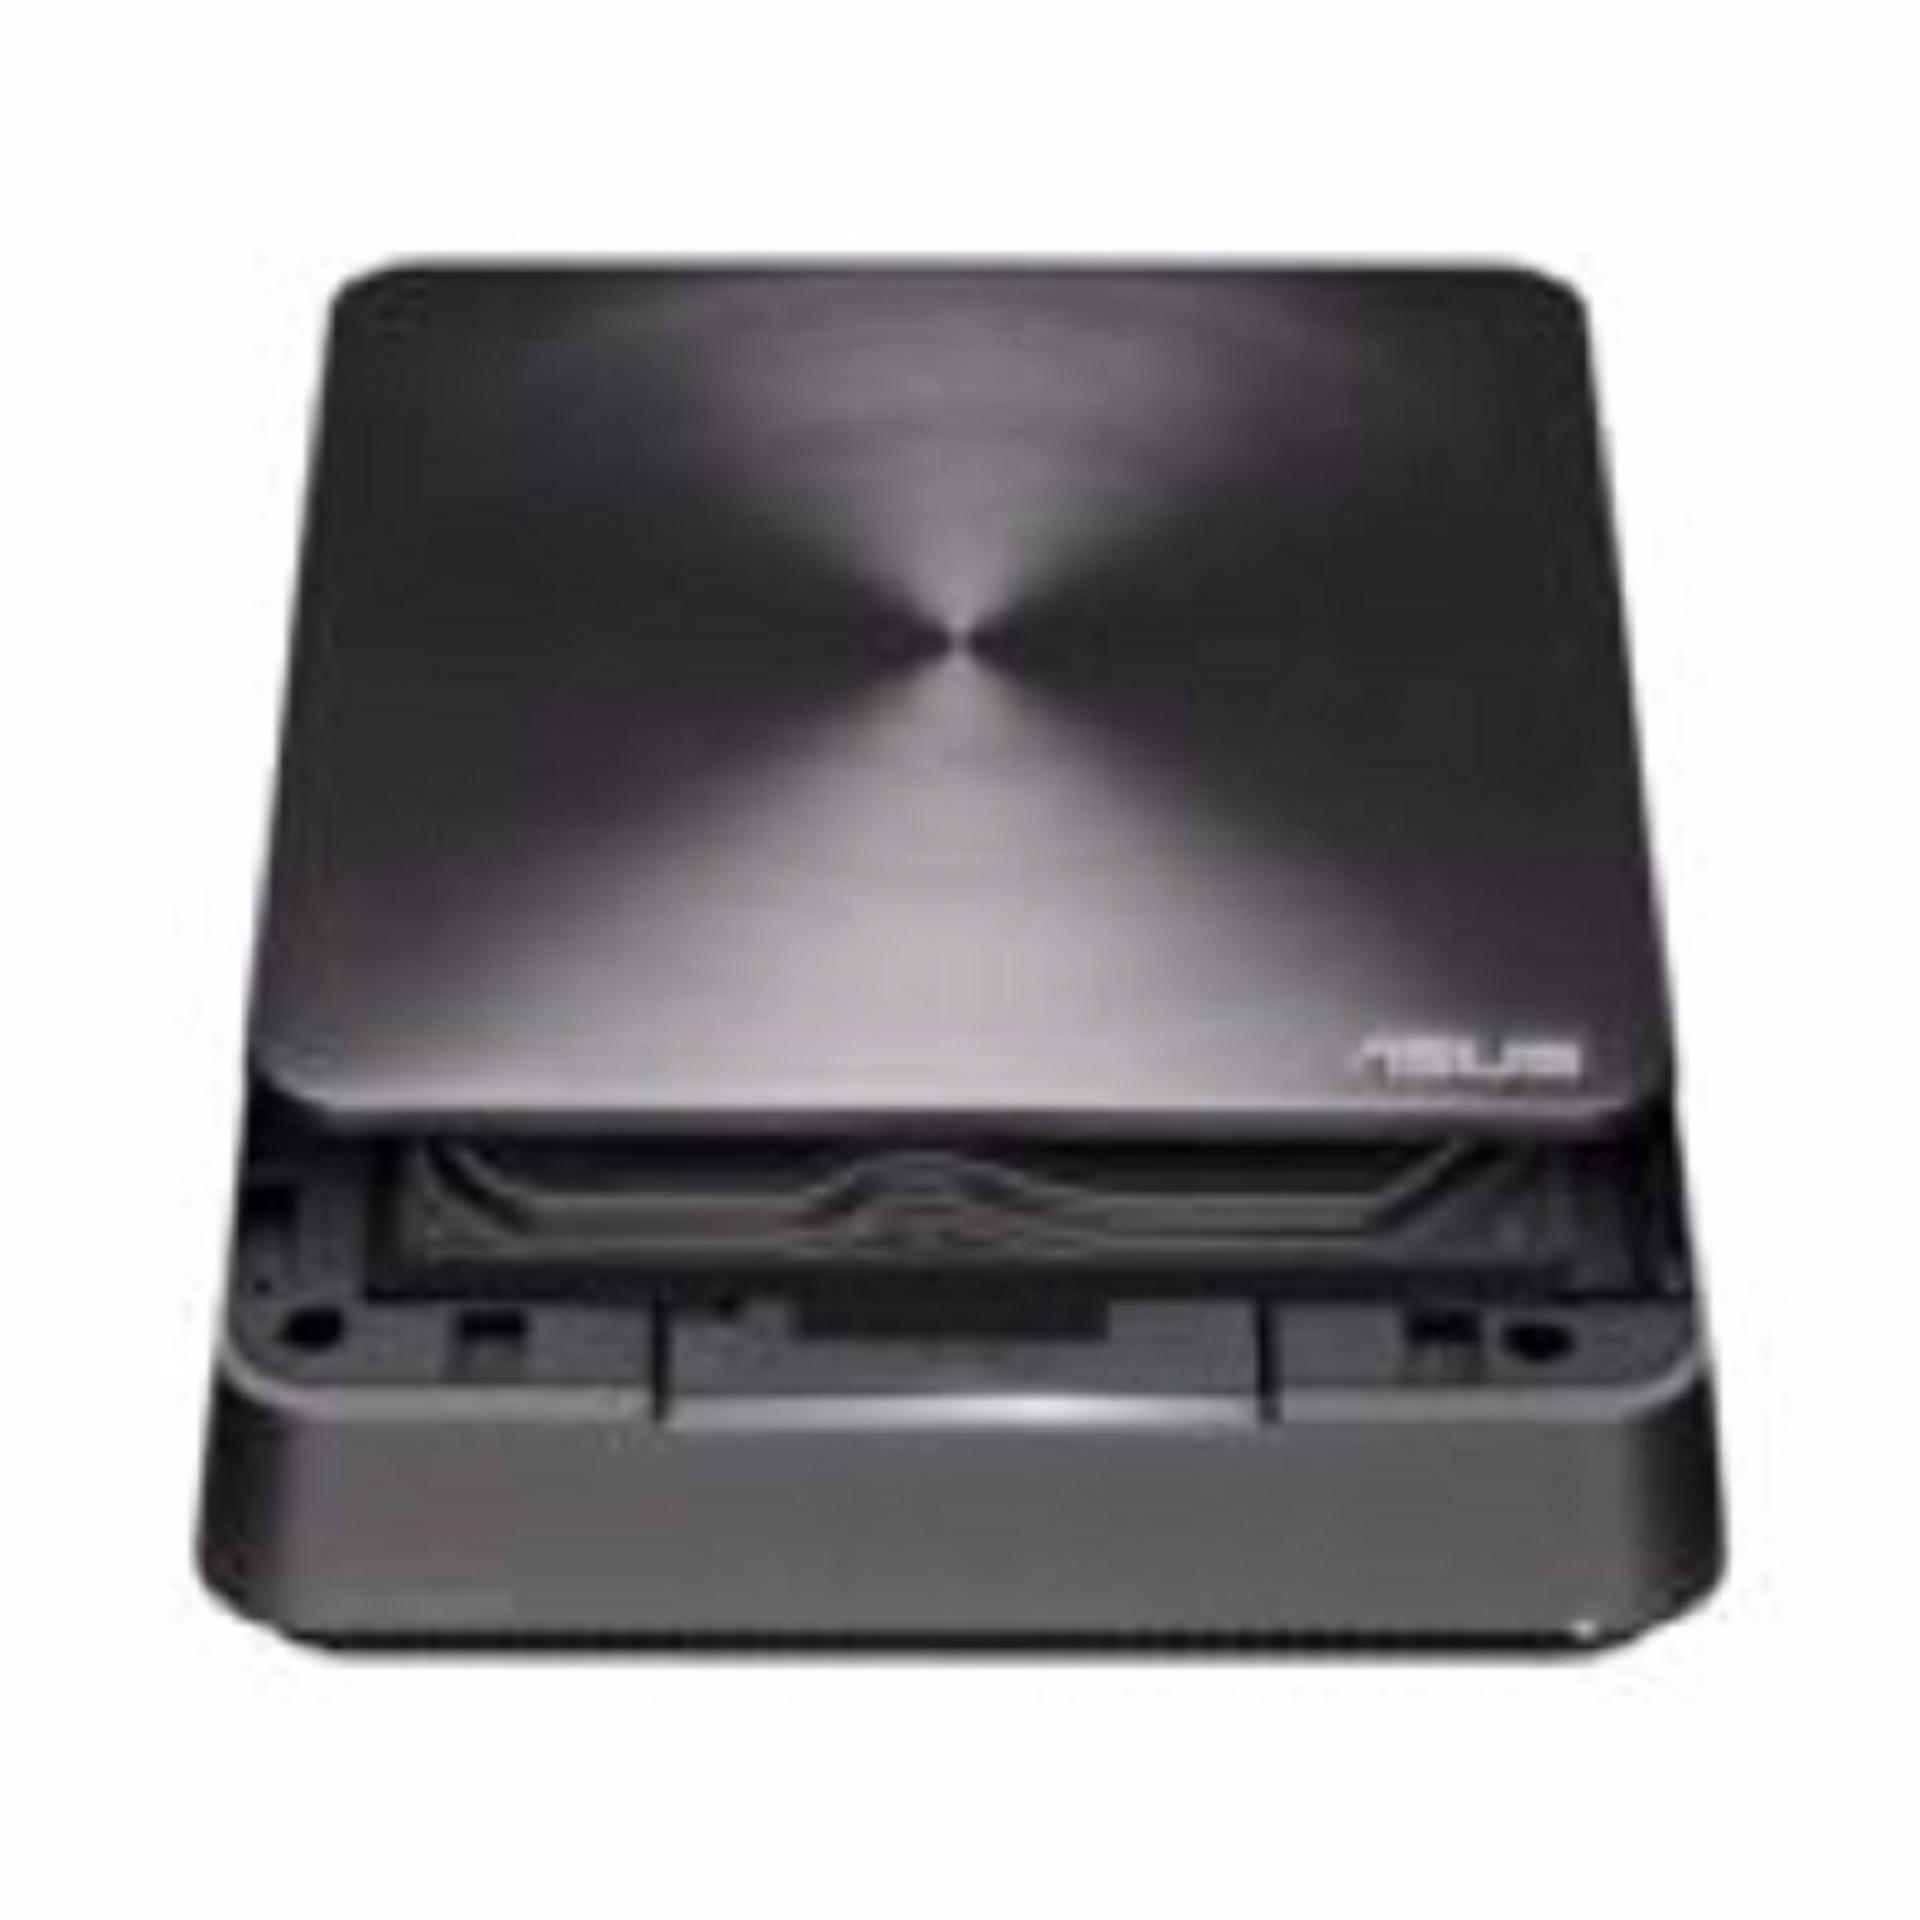 ASUS VM62N-G024R VIVO MINI PC